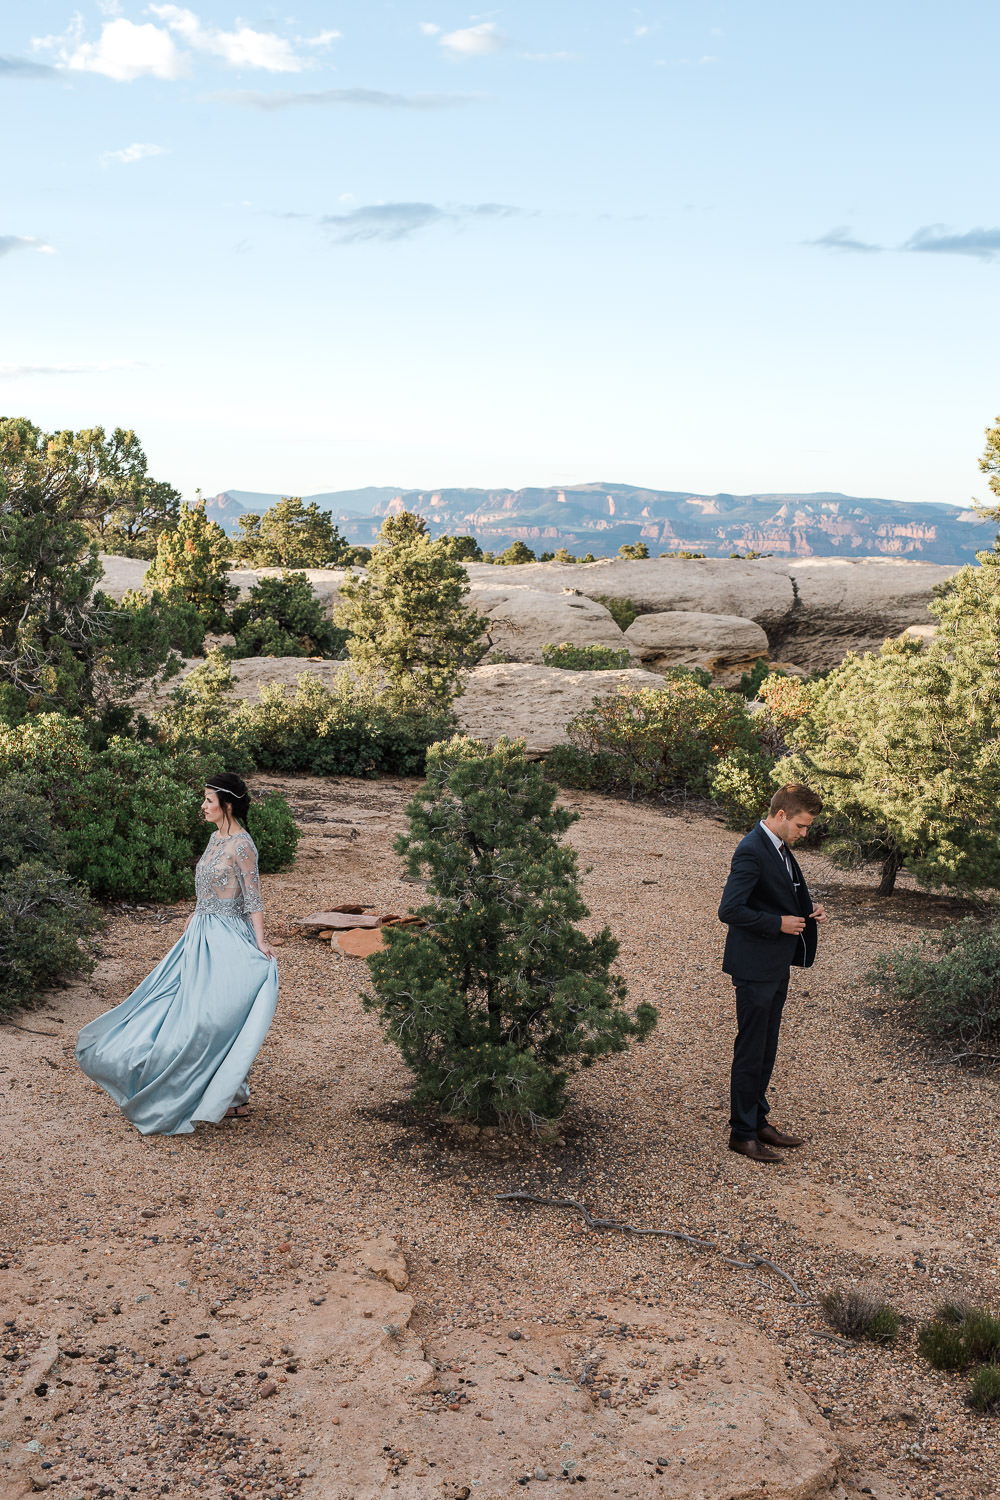 KyleLovesTori-Zion-National-Park-Adventure-Bridals-16.jpg